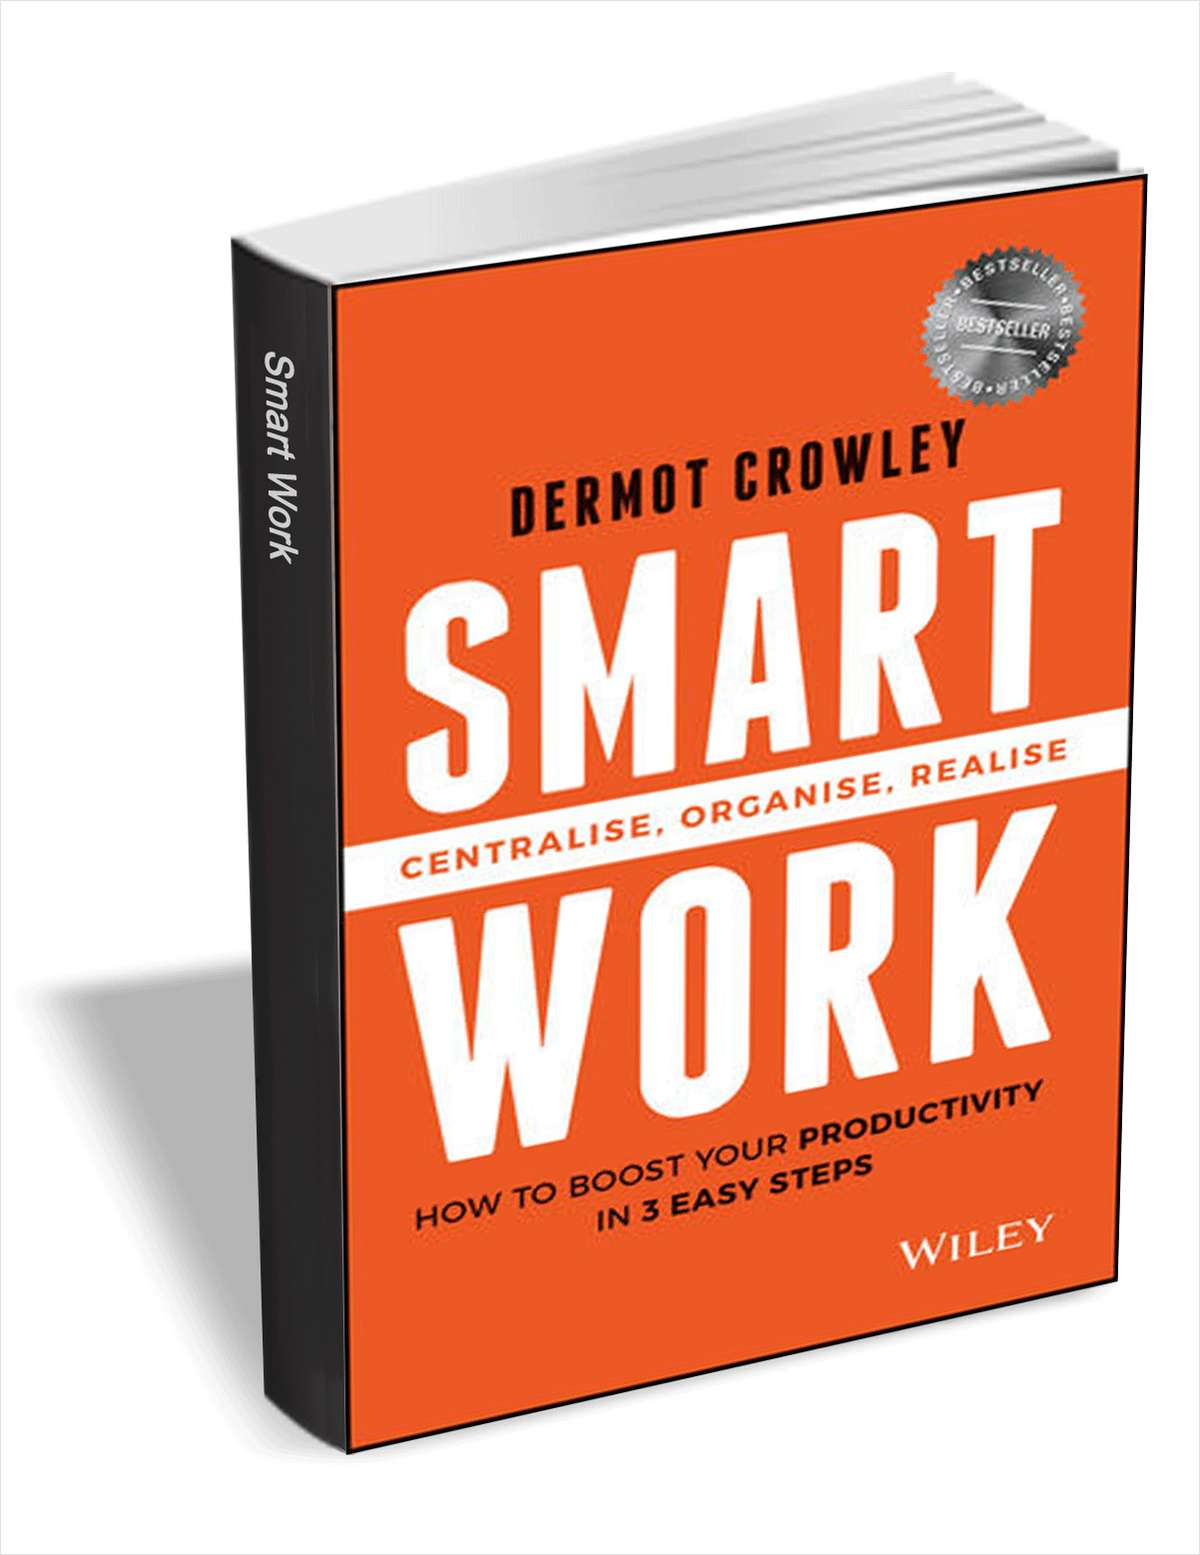 Smart Work - How to Boost Your Productivity in 3 Easy Steps ($10 Value) FREE For a Limited Time